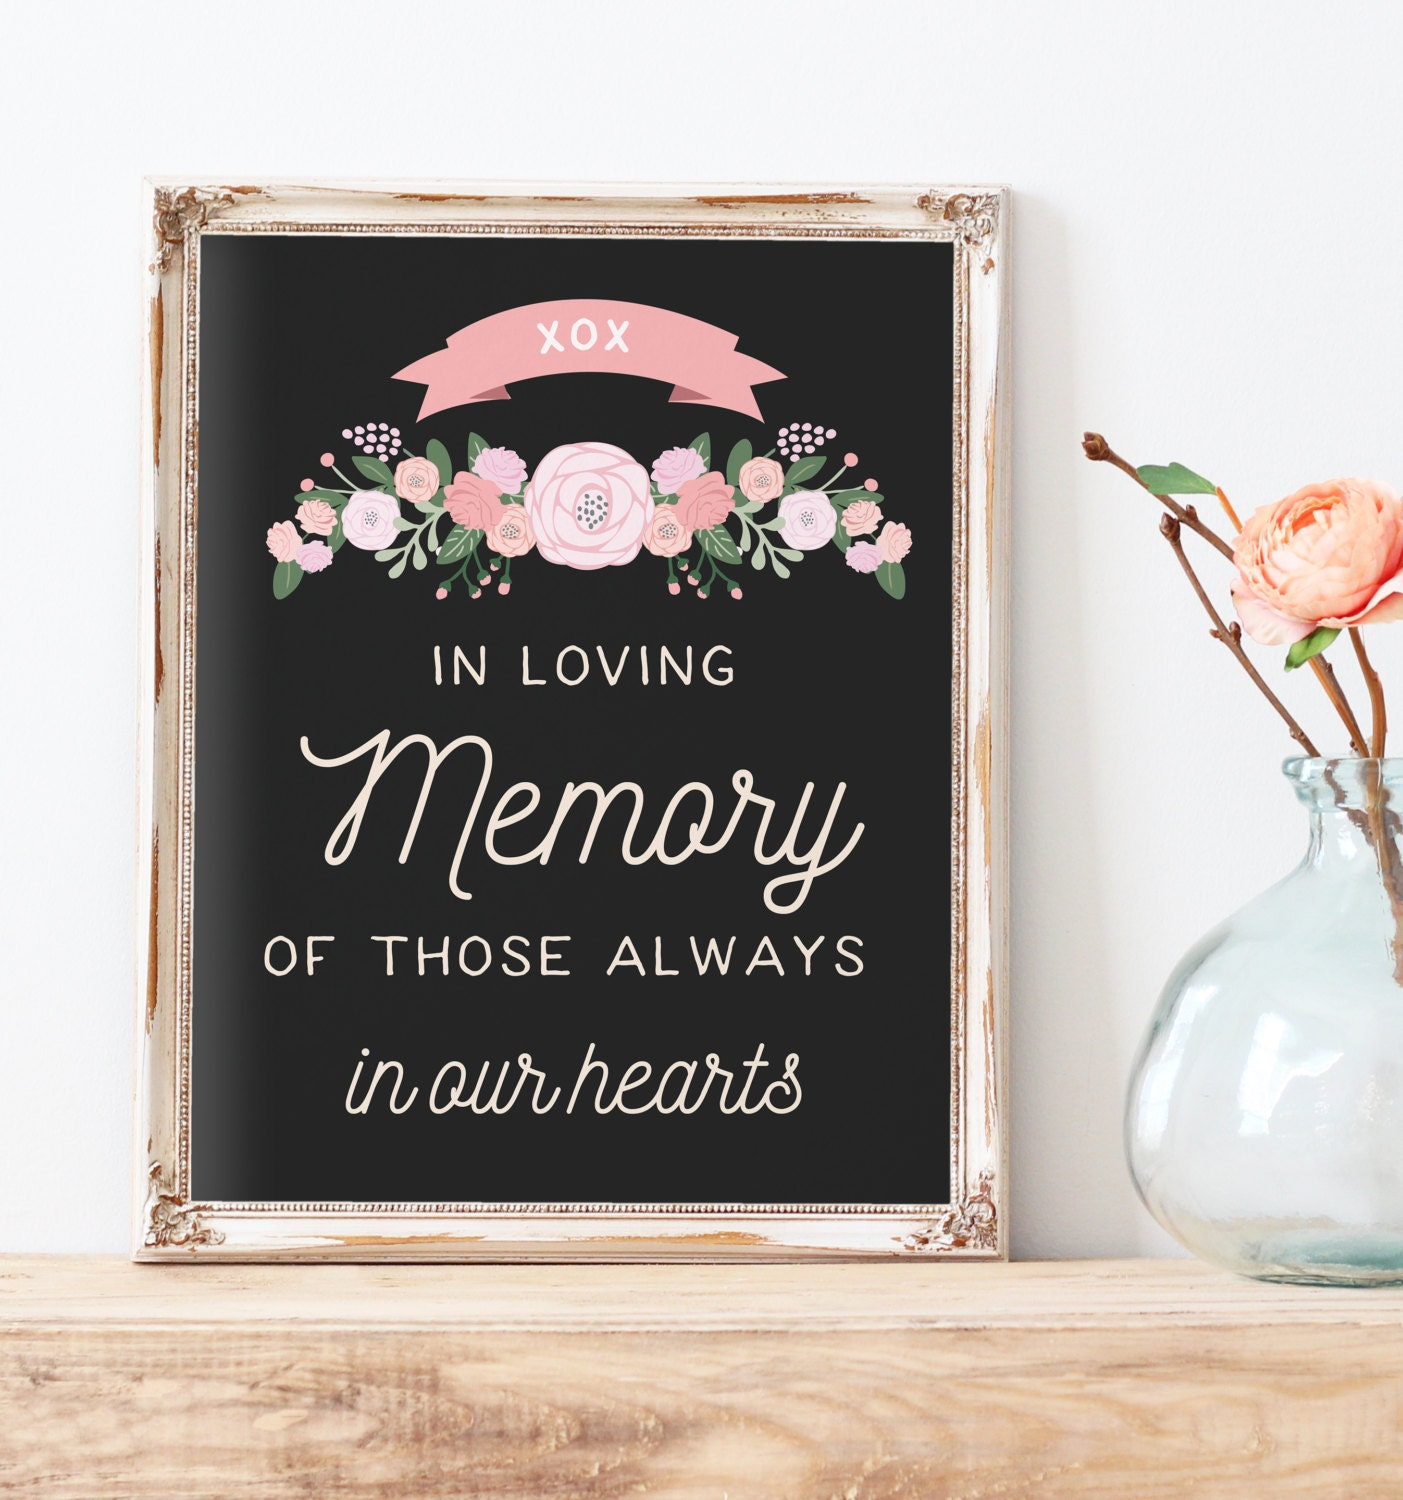 Rustic wedding in loving memory sign by missdesignberryinc on etsy for In loving memory wedding sign